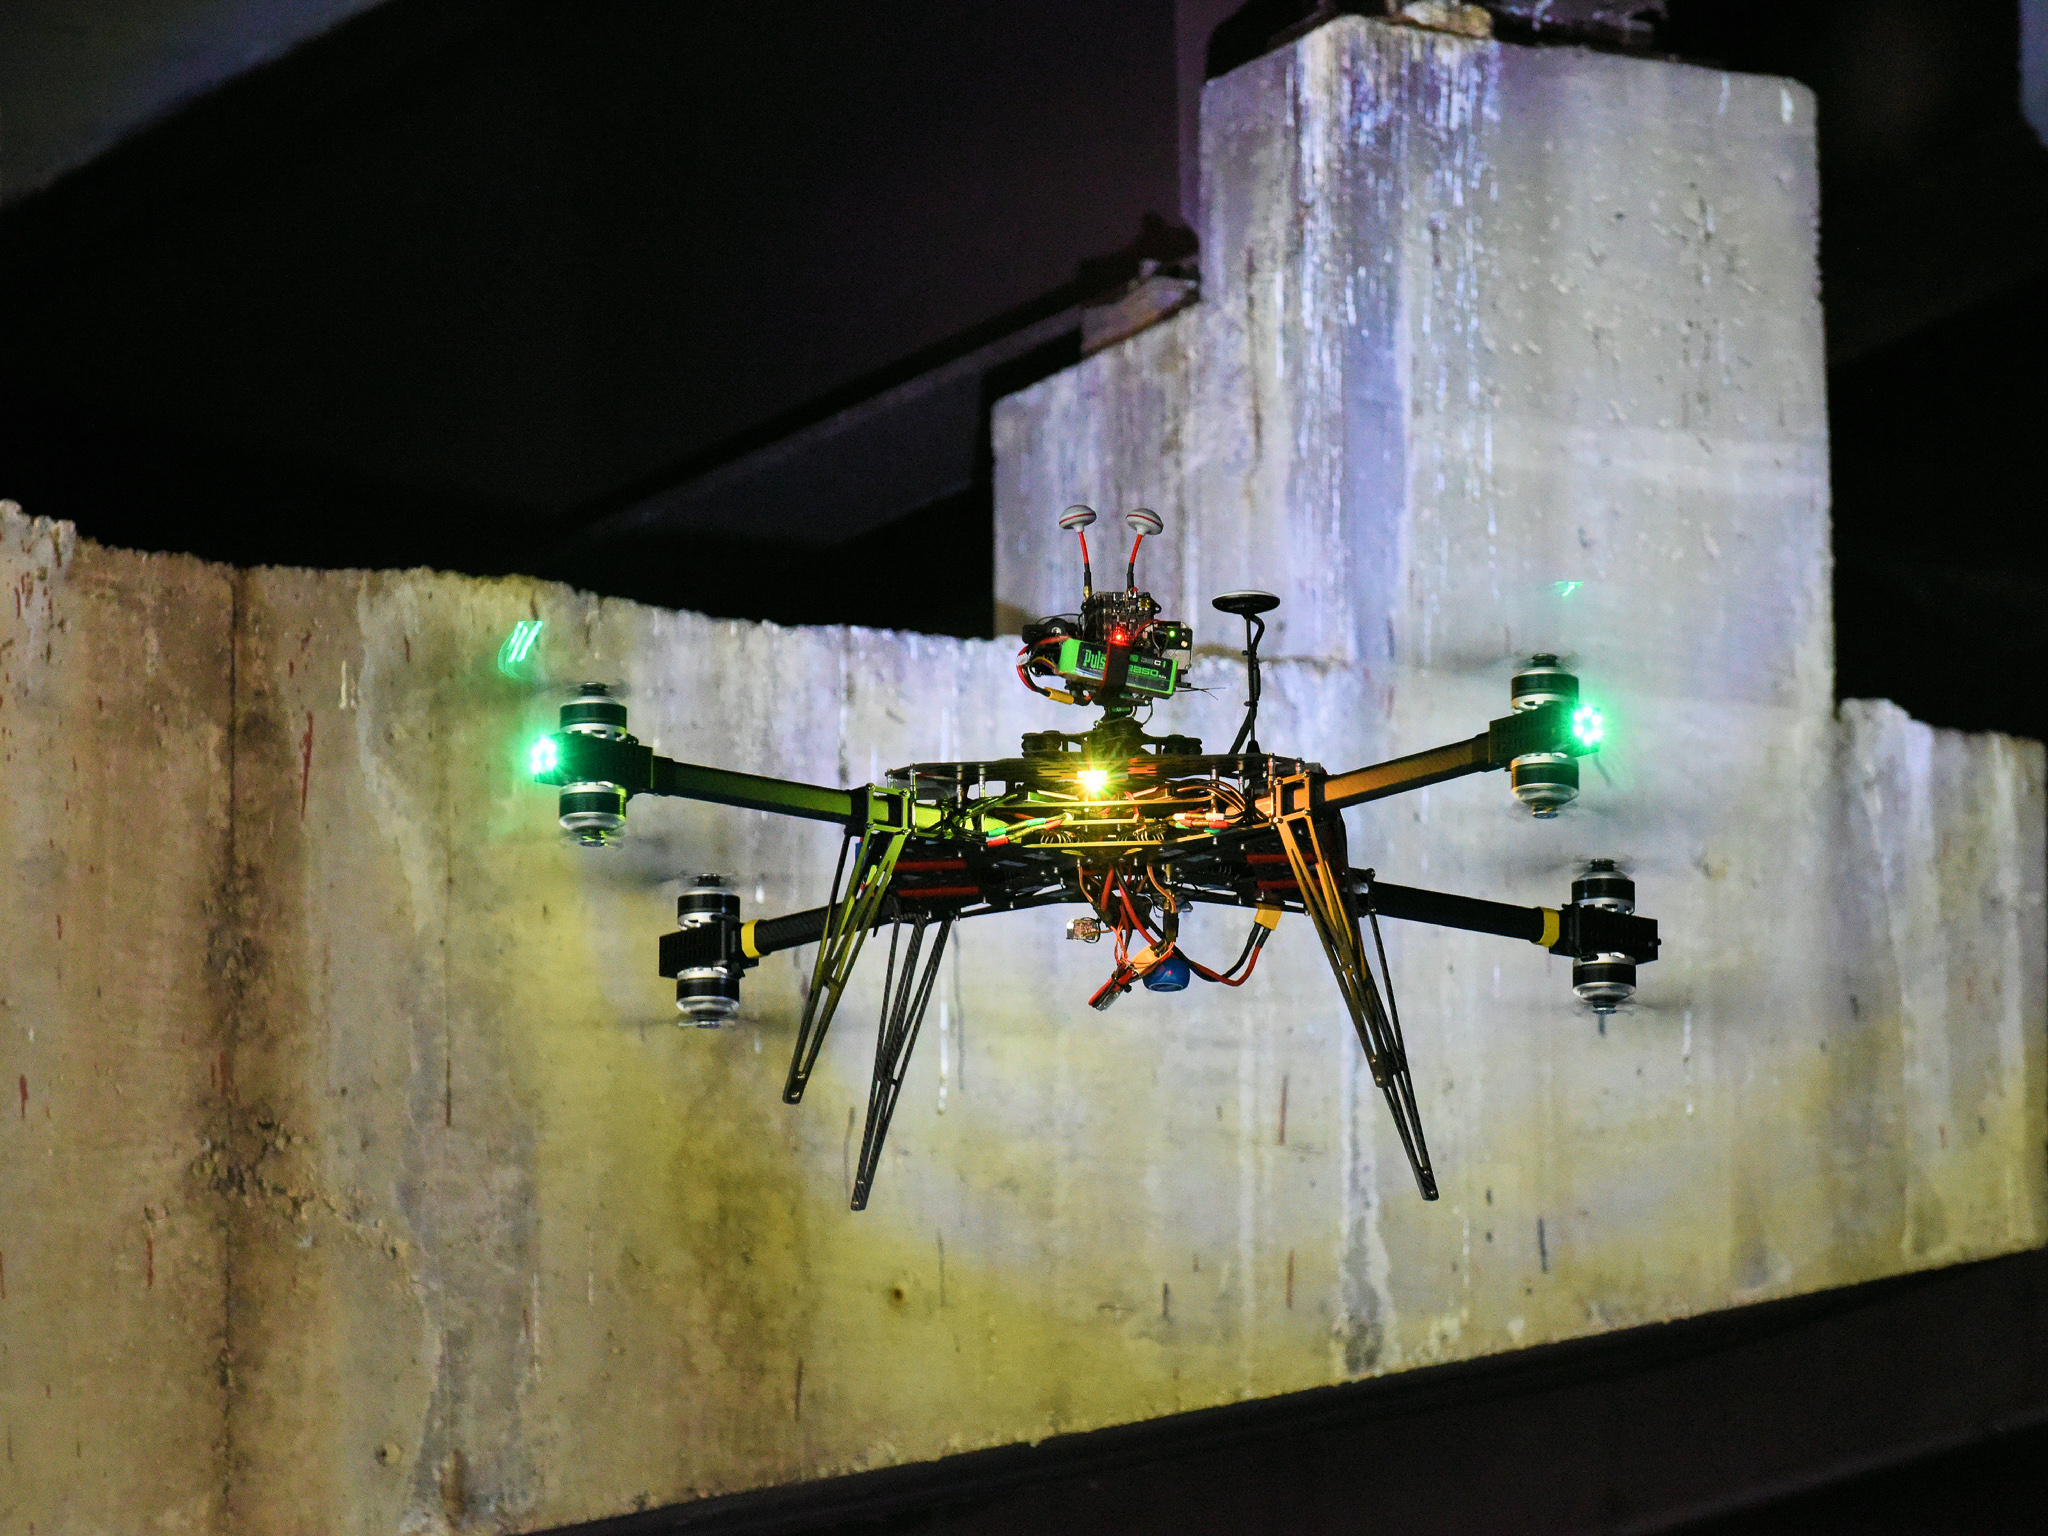 Drone consulting services for Commercial and Industrial Drone Applications